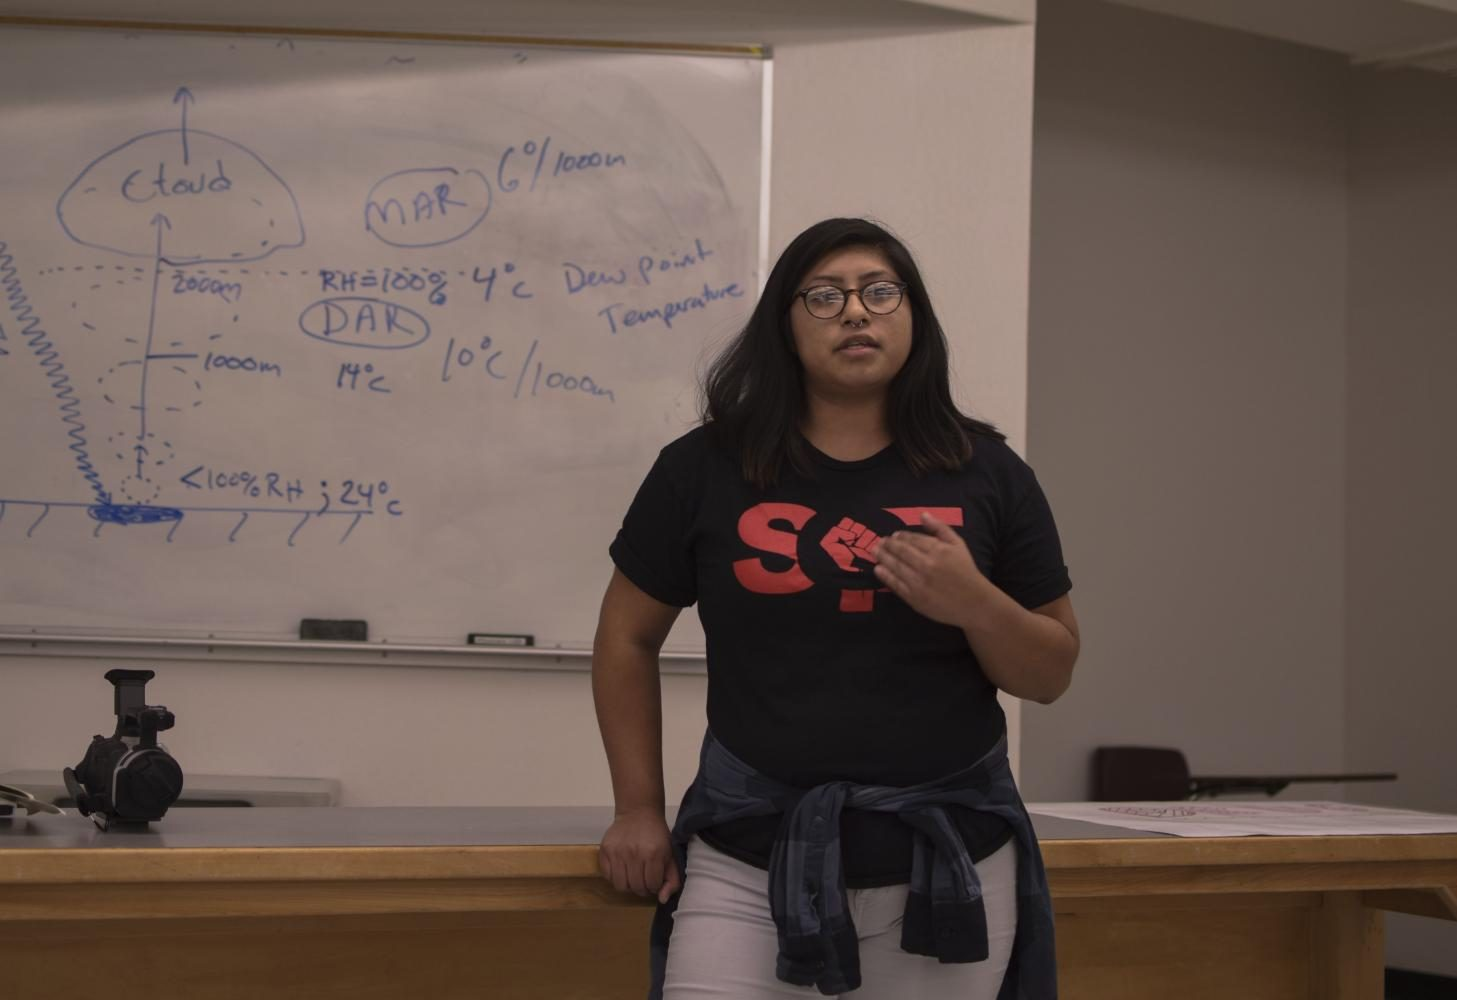 HFA+student+speaks+about+her+concerns+over+budget+cuts+and+what+that+may+mean+for+her+future.+Photo+credit%3A+Anisha+Brady